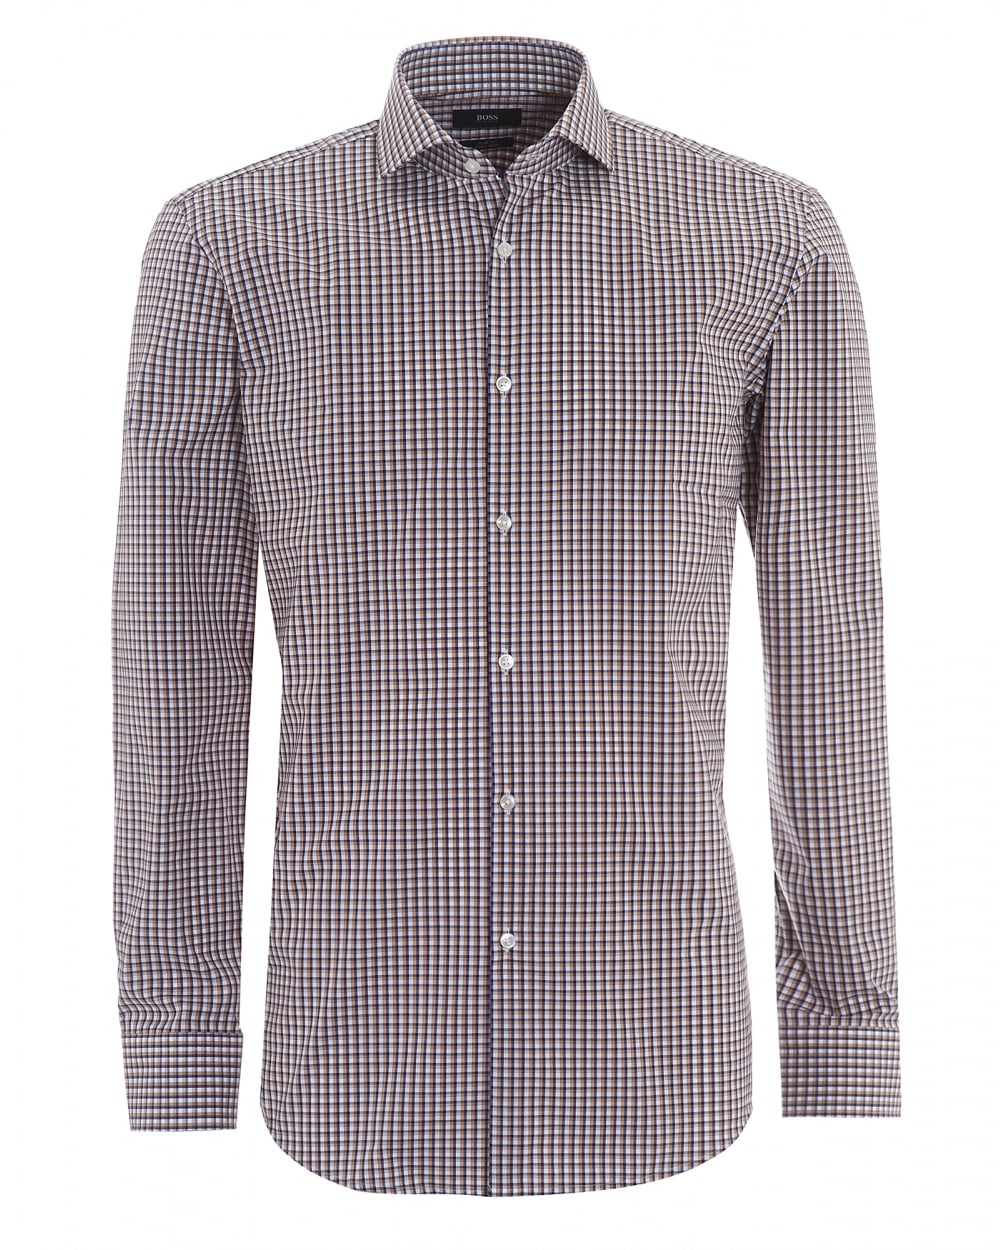 Mens Jason Small Check Navy Tobacco Shirt